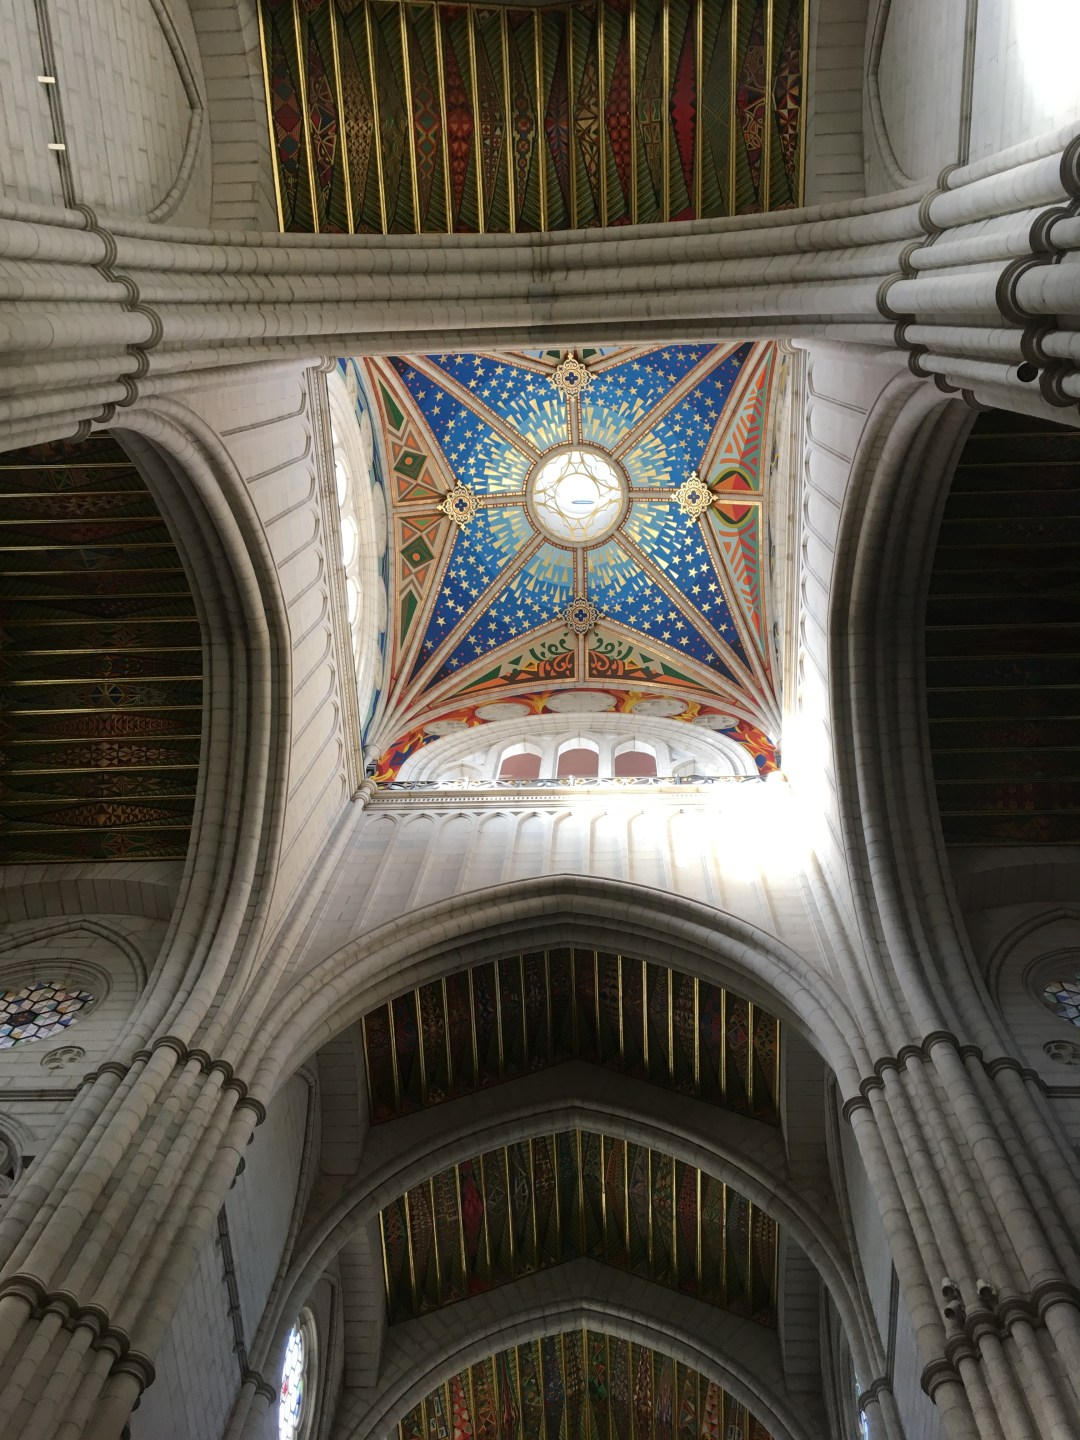 The brightly coloured ceiling design of Madrid's cathedral